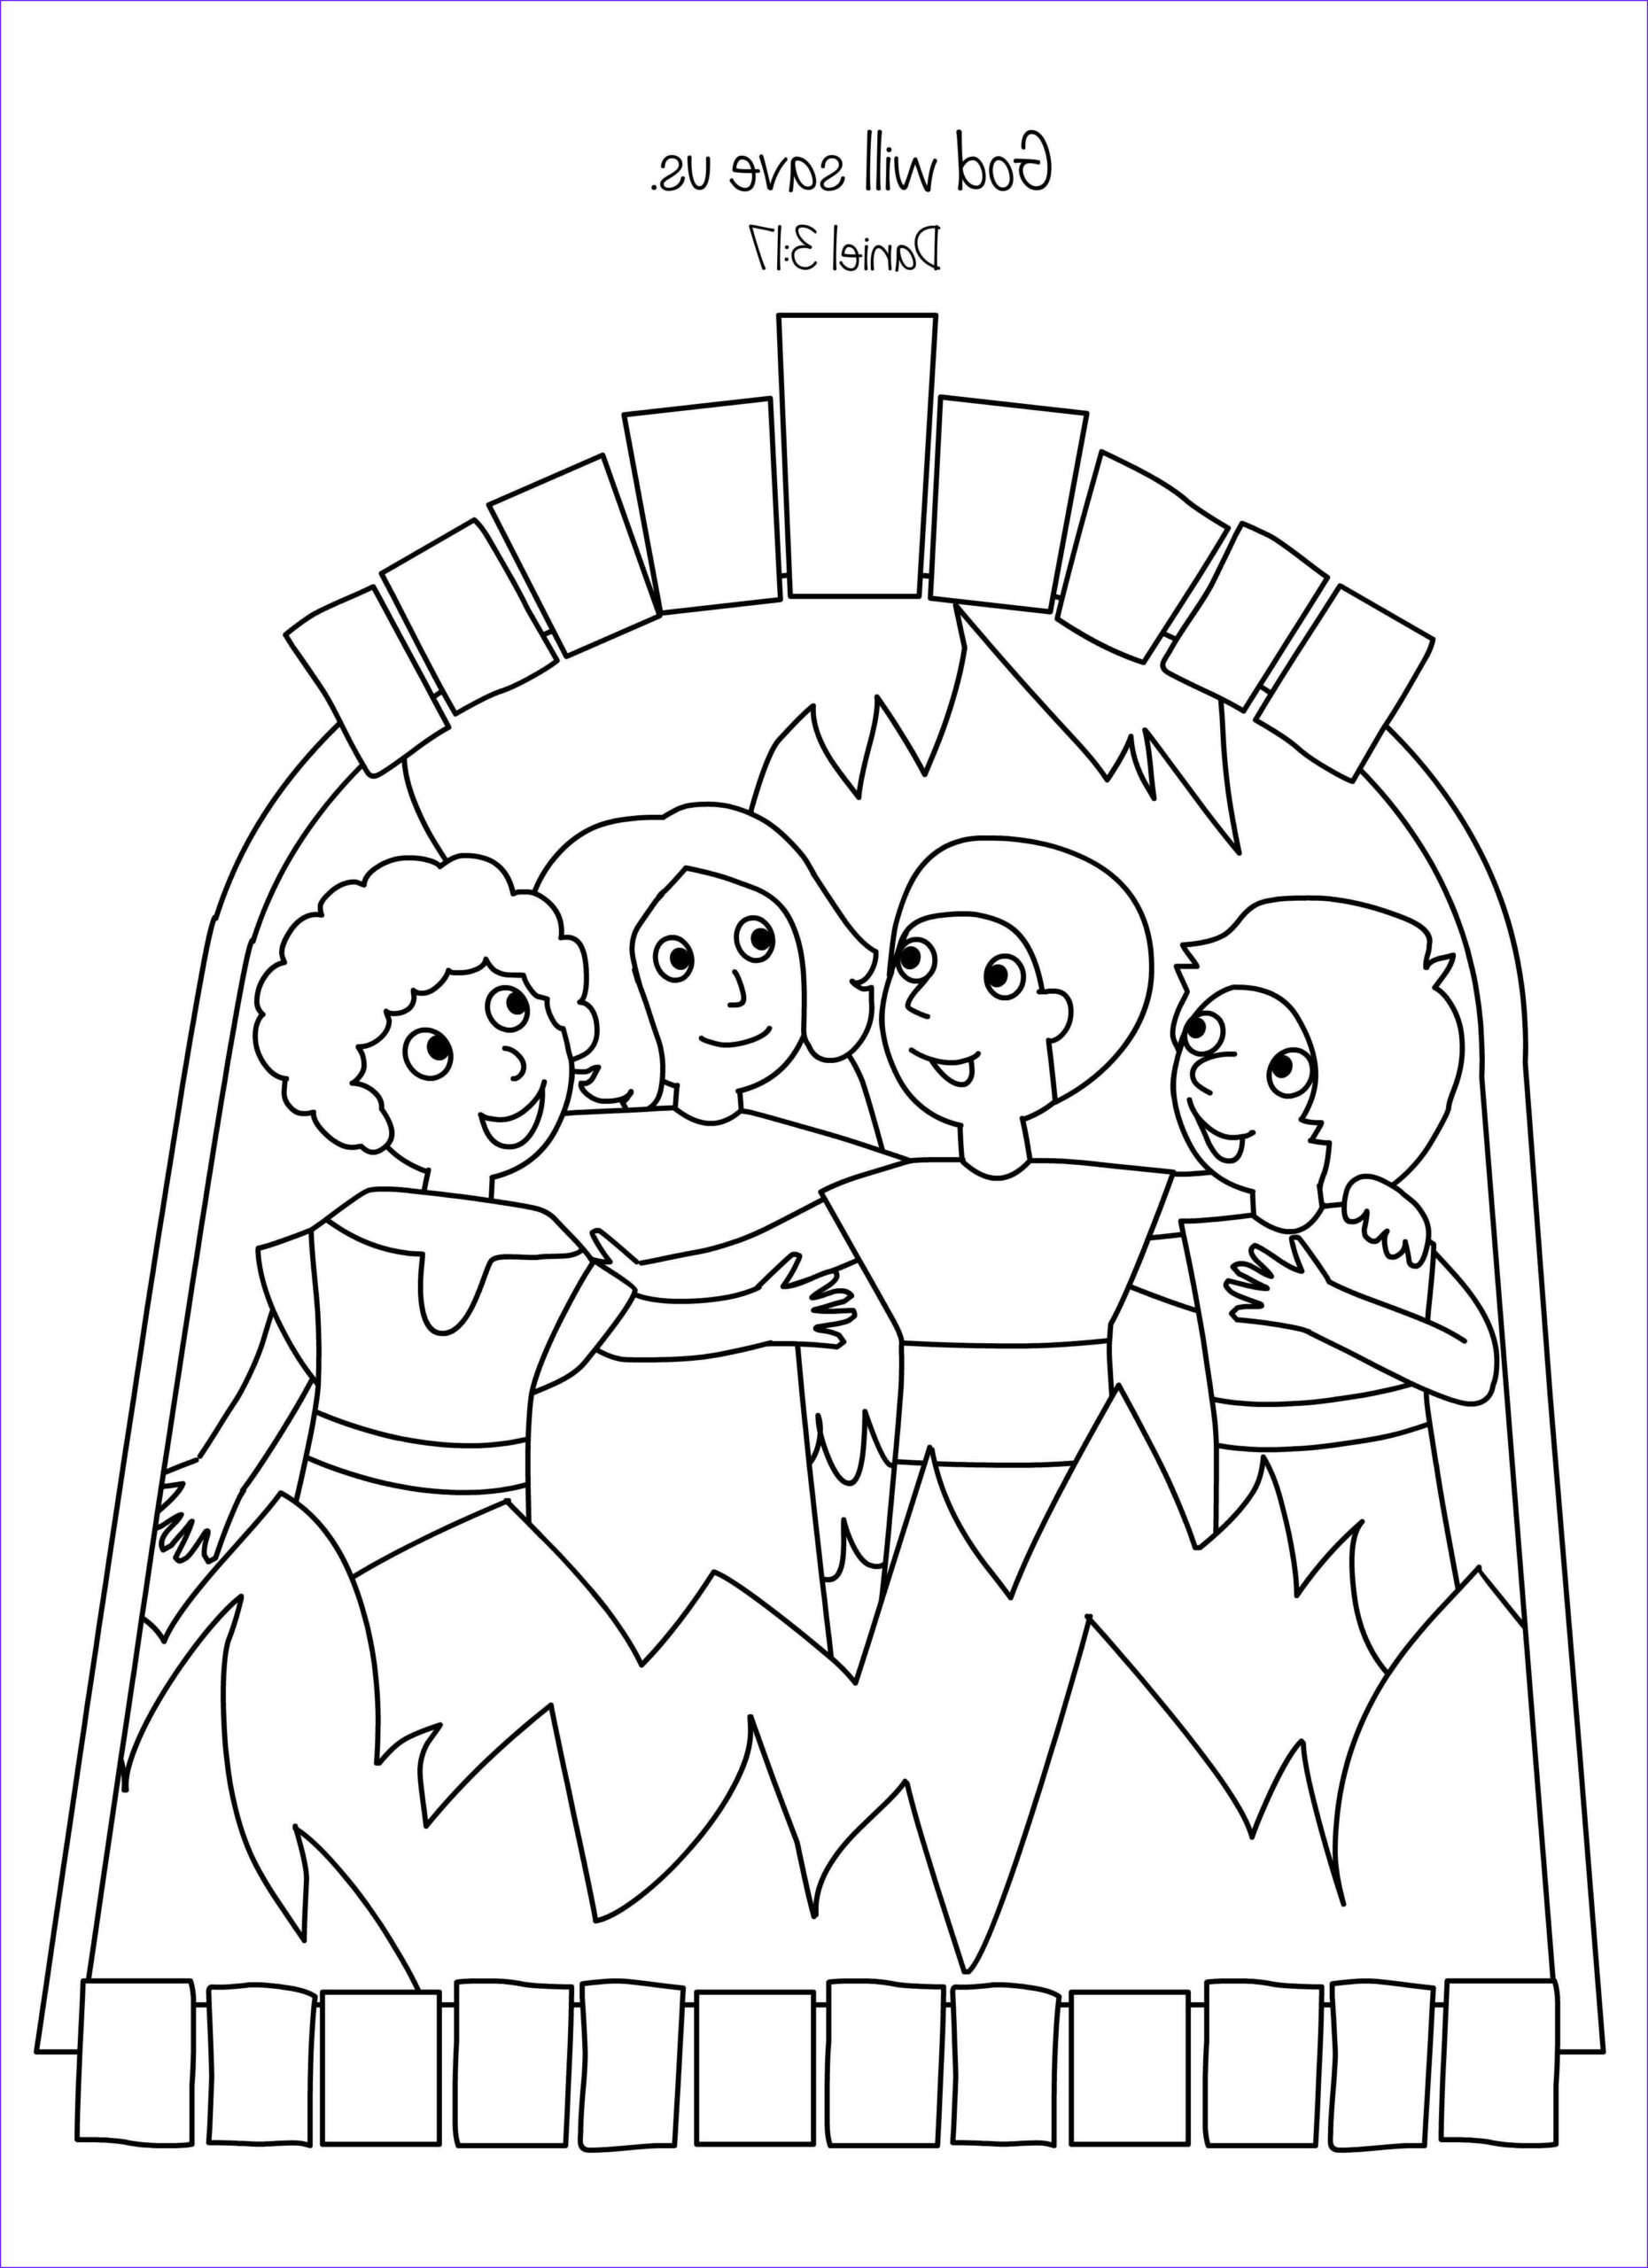 Shadrach Meshach and Abednego Coloring Page Beautiful Photos Amazing Fiery Furnace Coloring Page Shadrach Meshach and